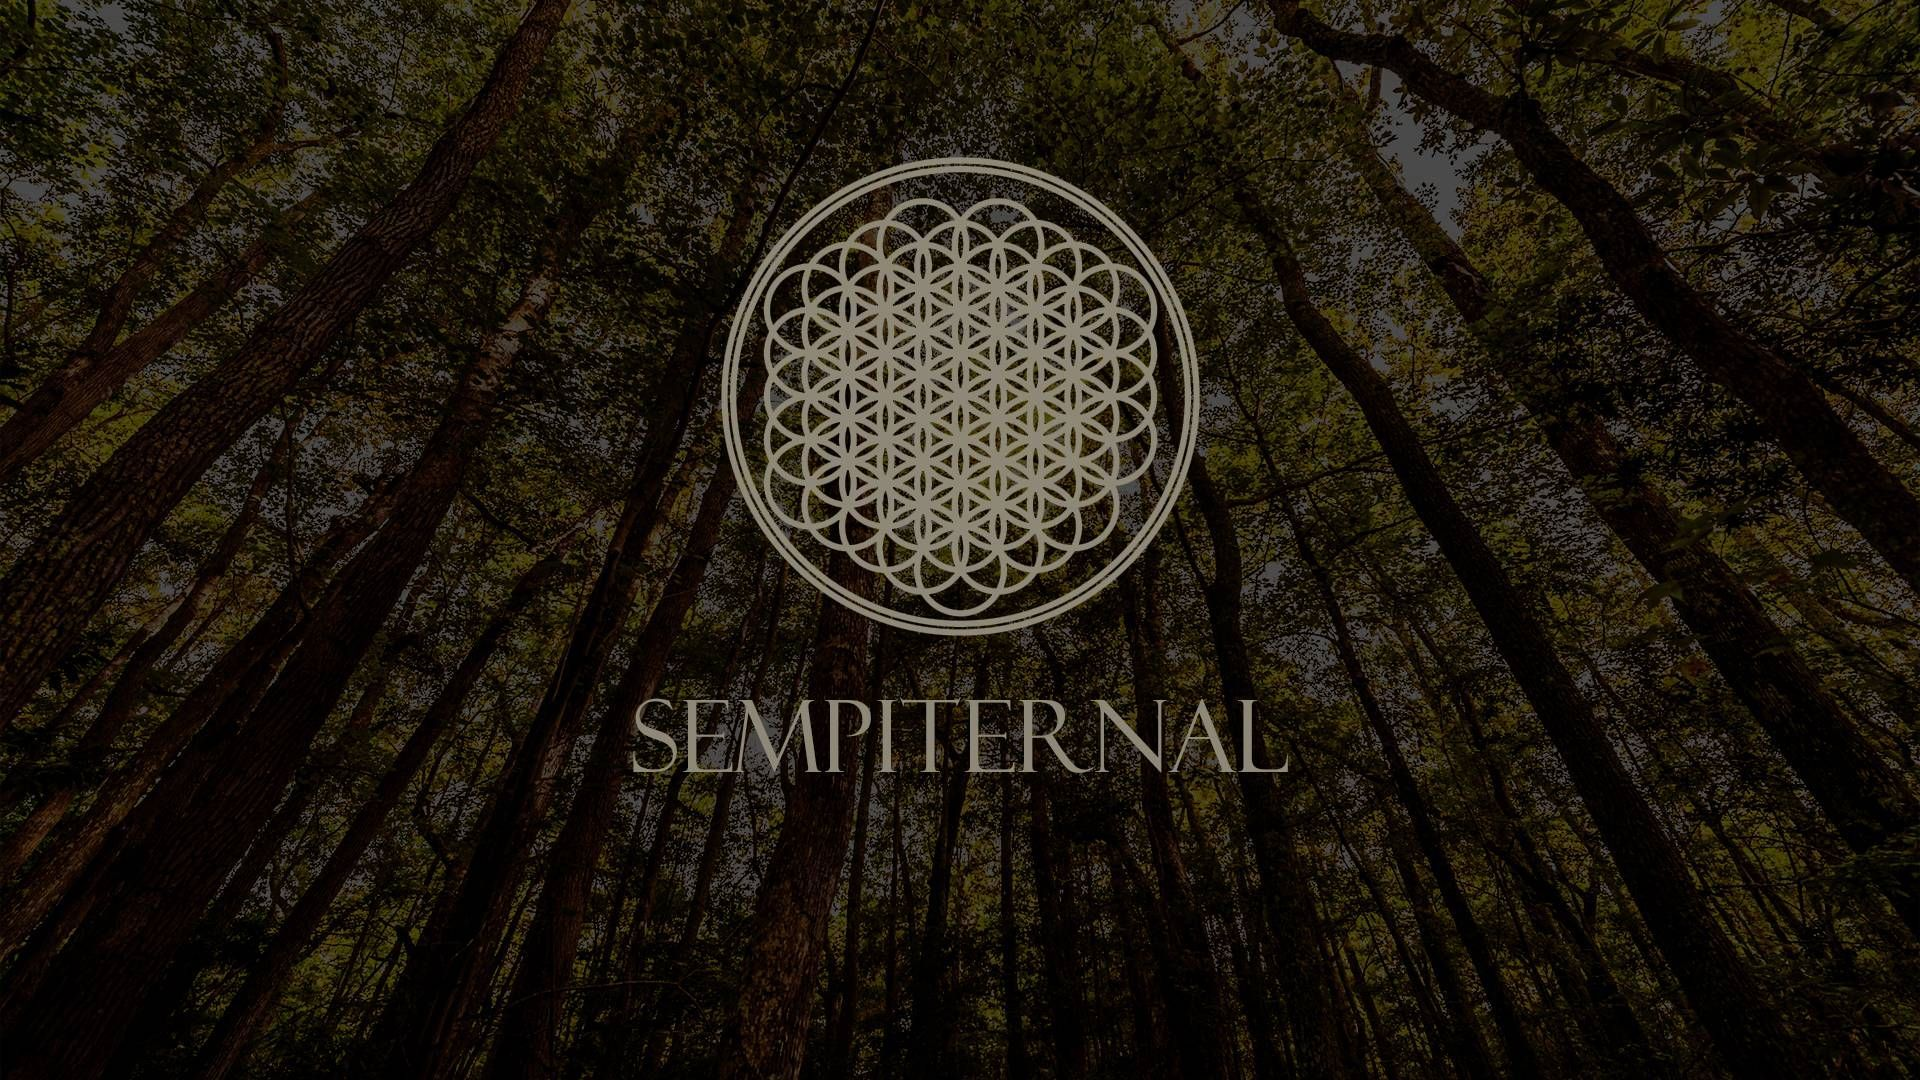 Photo Of Bring Me The Horizon Hd - Bring Me The Horizon Hospital For Souls , HD Wallpaper & Backgrounds